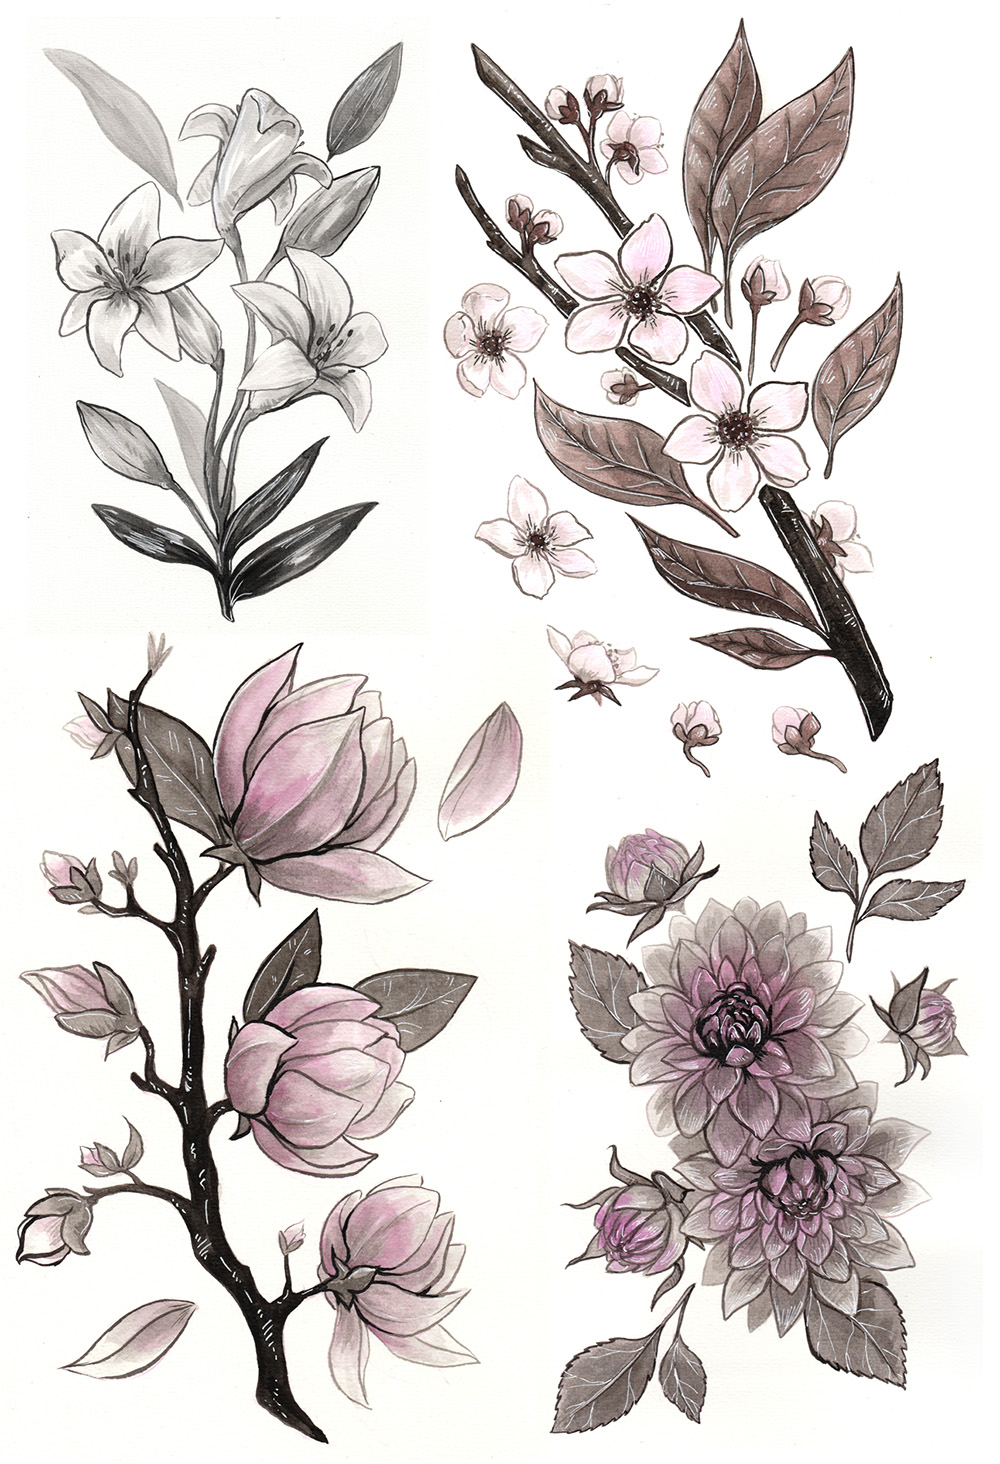 ink flower illustrations of lily, magnolia, cherry blossoms, and dahlias